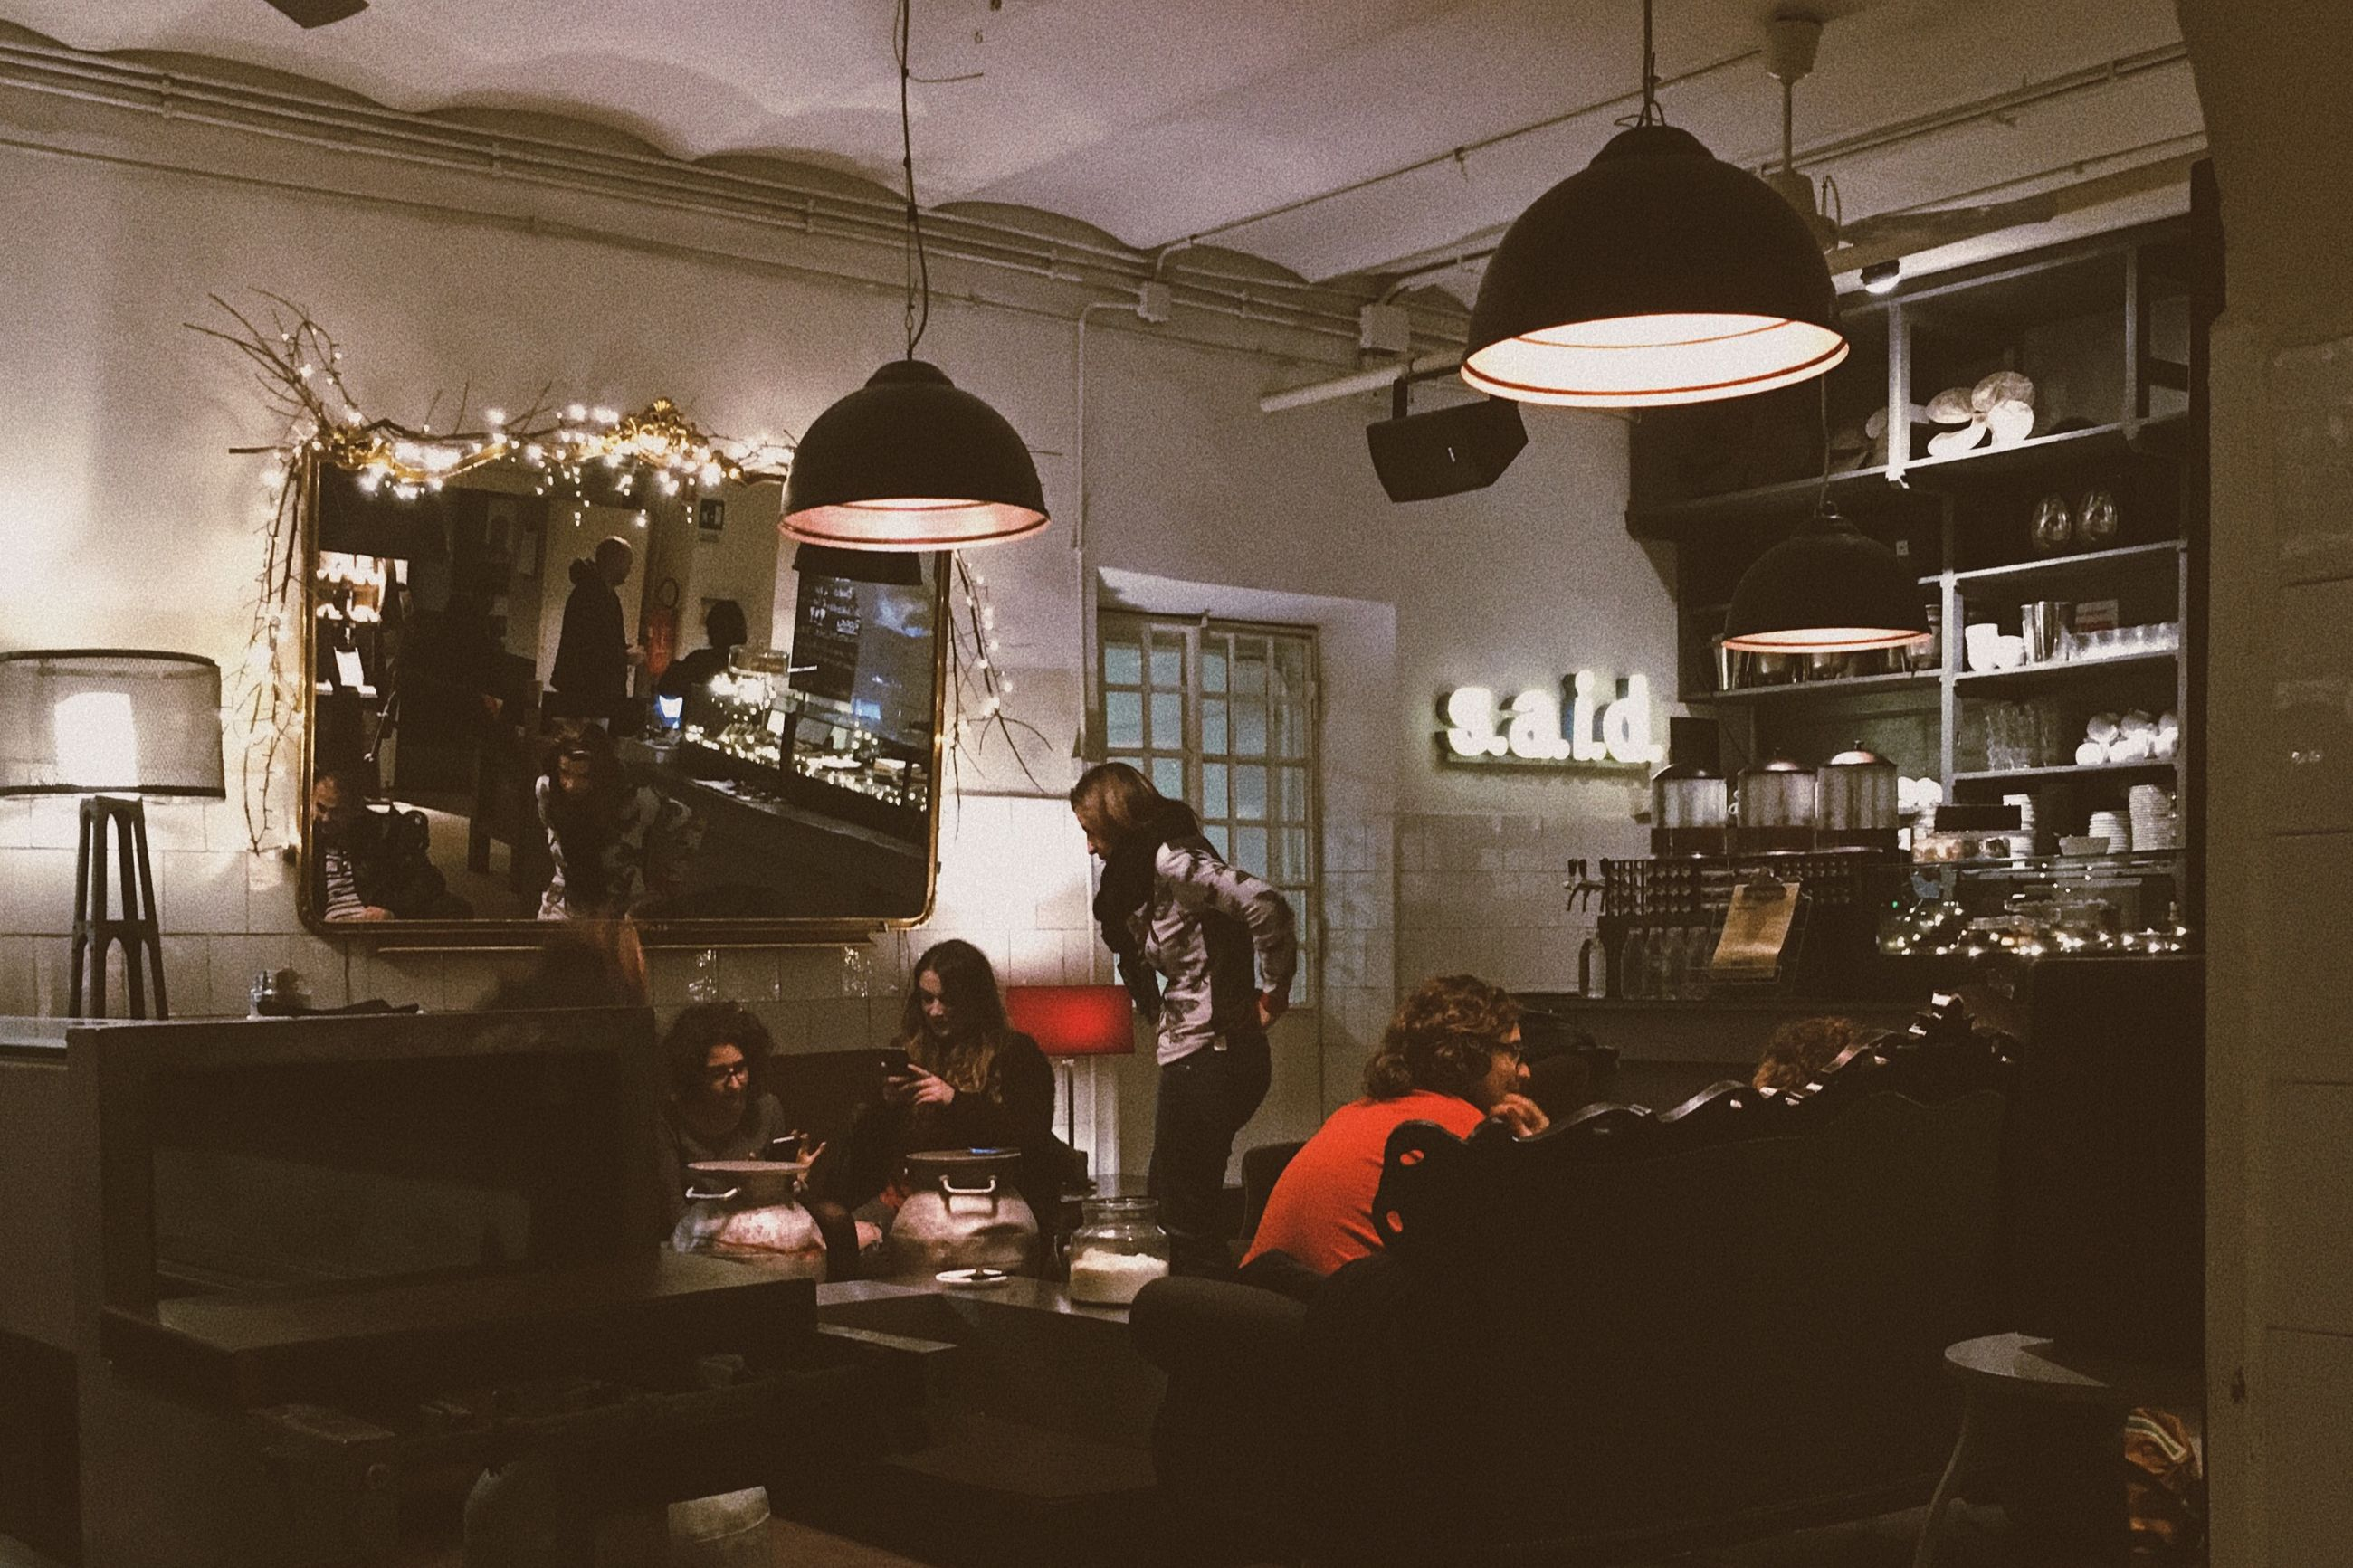 GROUP OF PEOPLE AT ILLUMINATED STORE